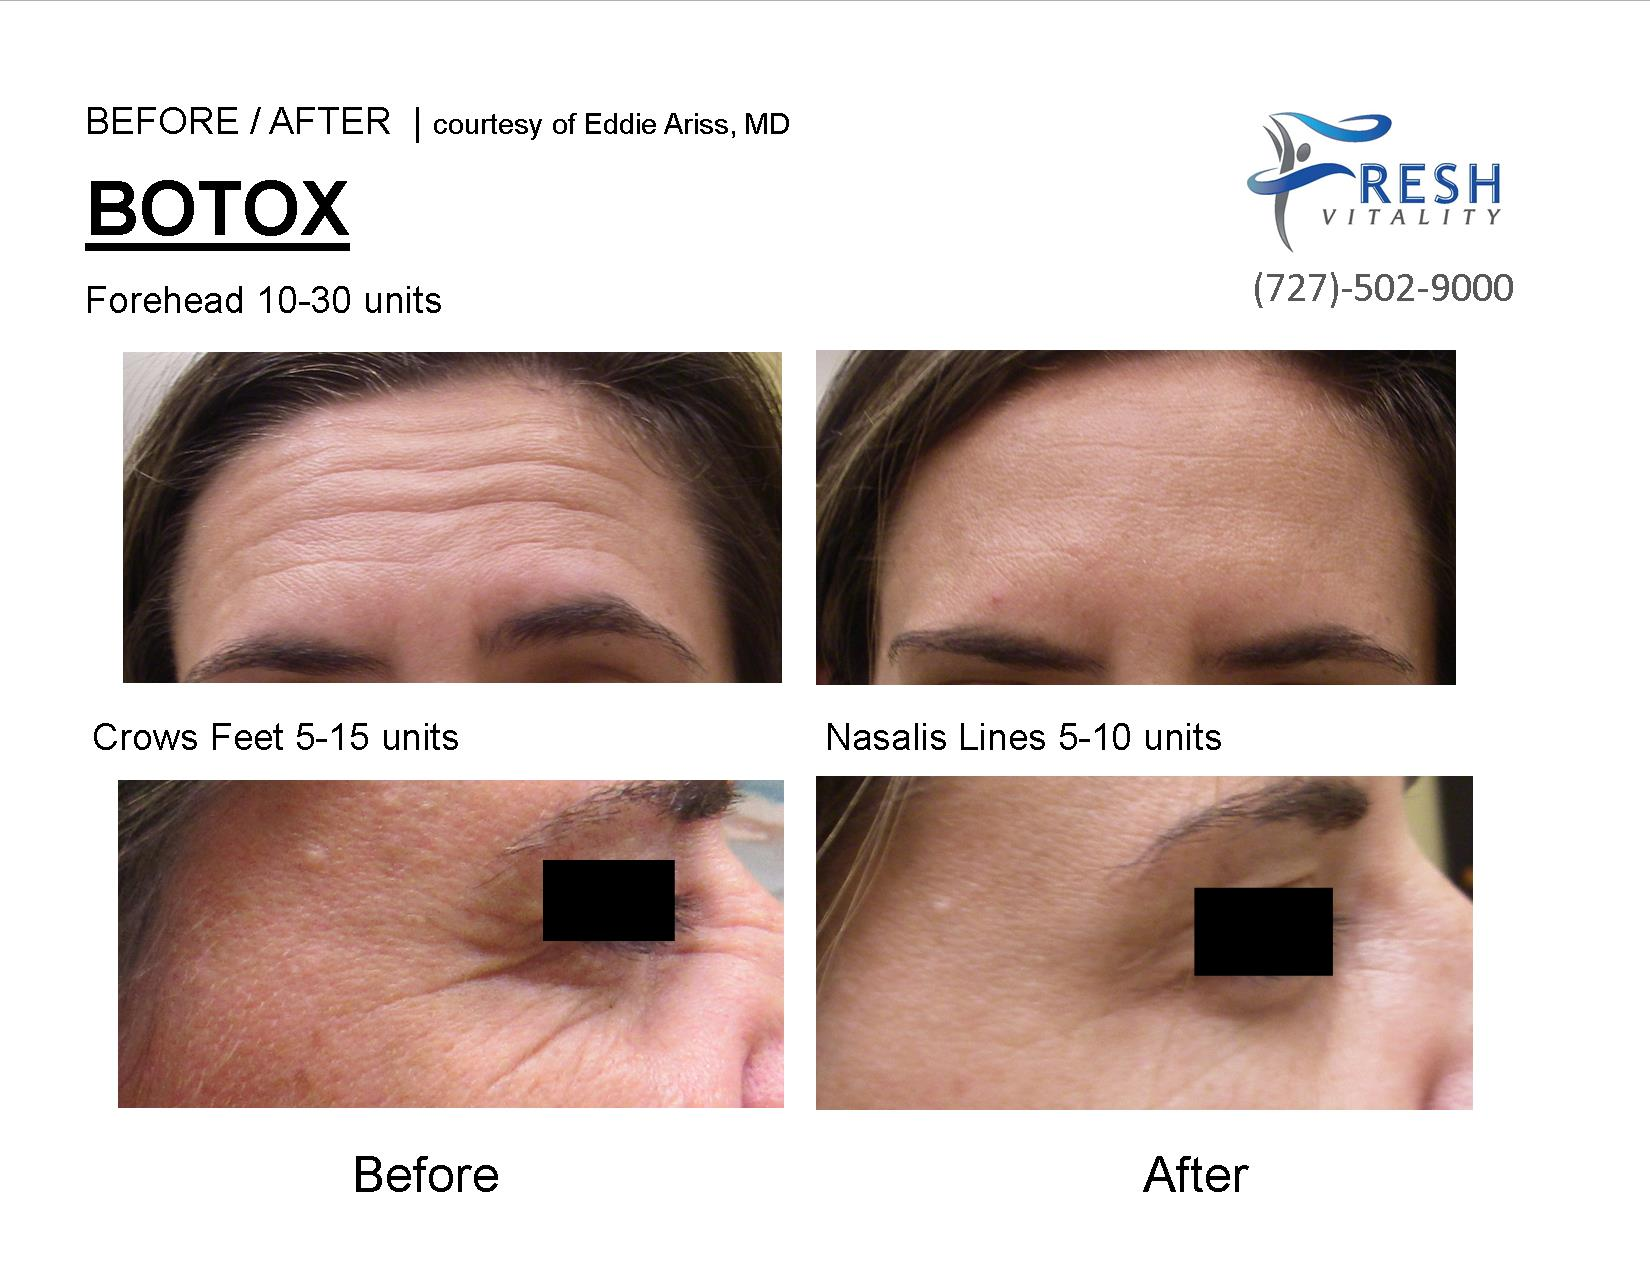 BOTOX St Petersburg - Call Fresh Vitality Med Spa Today ...